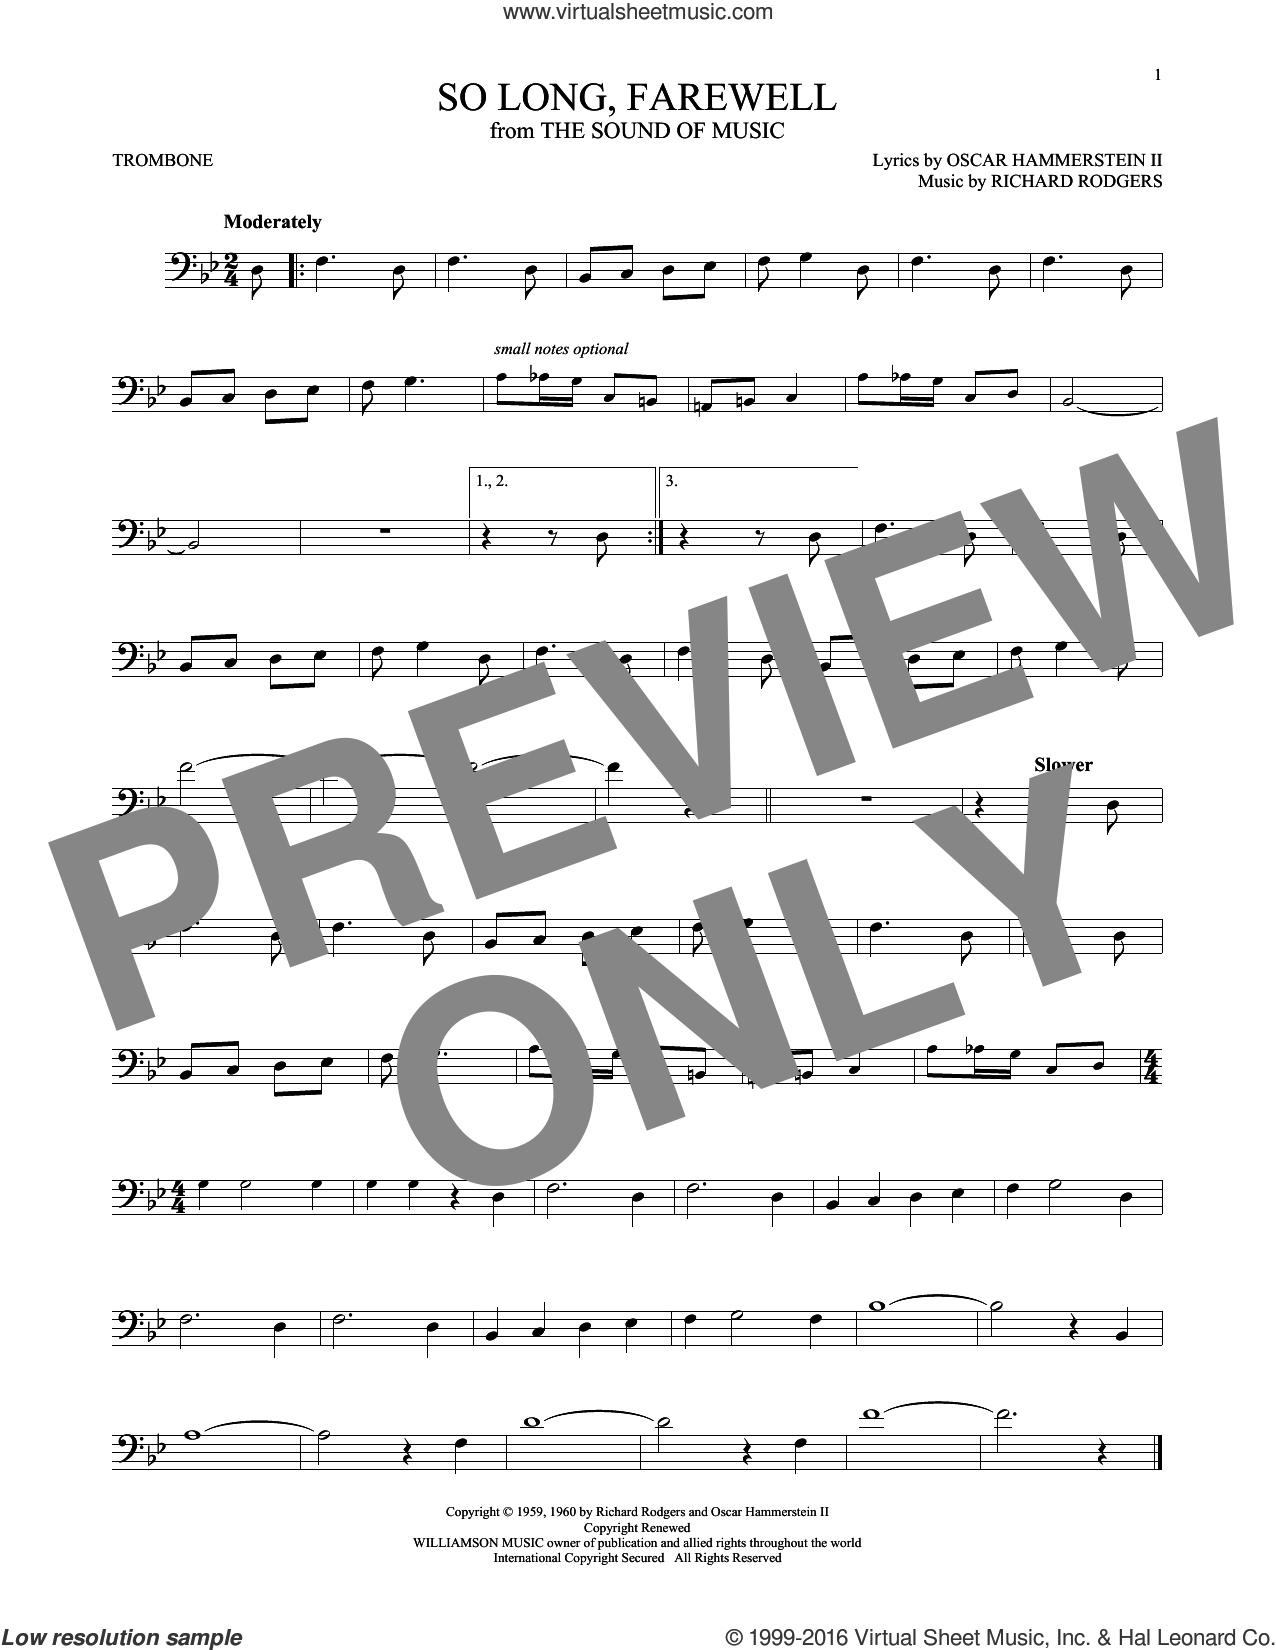 So Long, Farewell (from The Sound of Music) sheet music for trombone solo by Rodgers & Hammerstein, Oscar II Hammerstein and Richard Rodgers, intermediate skill level